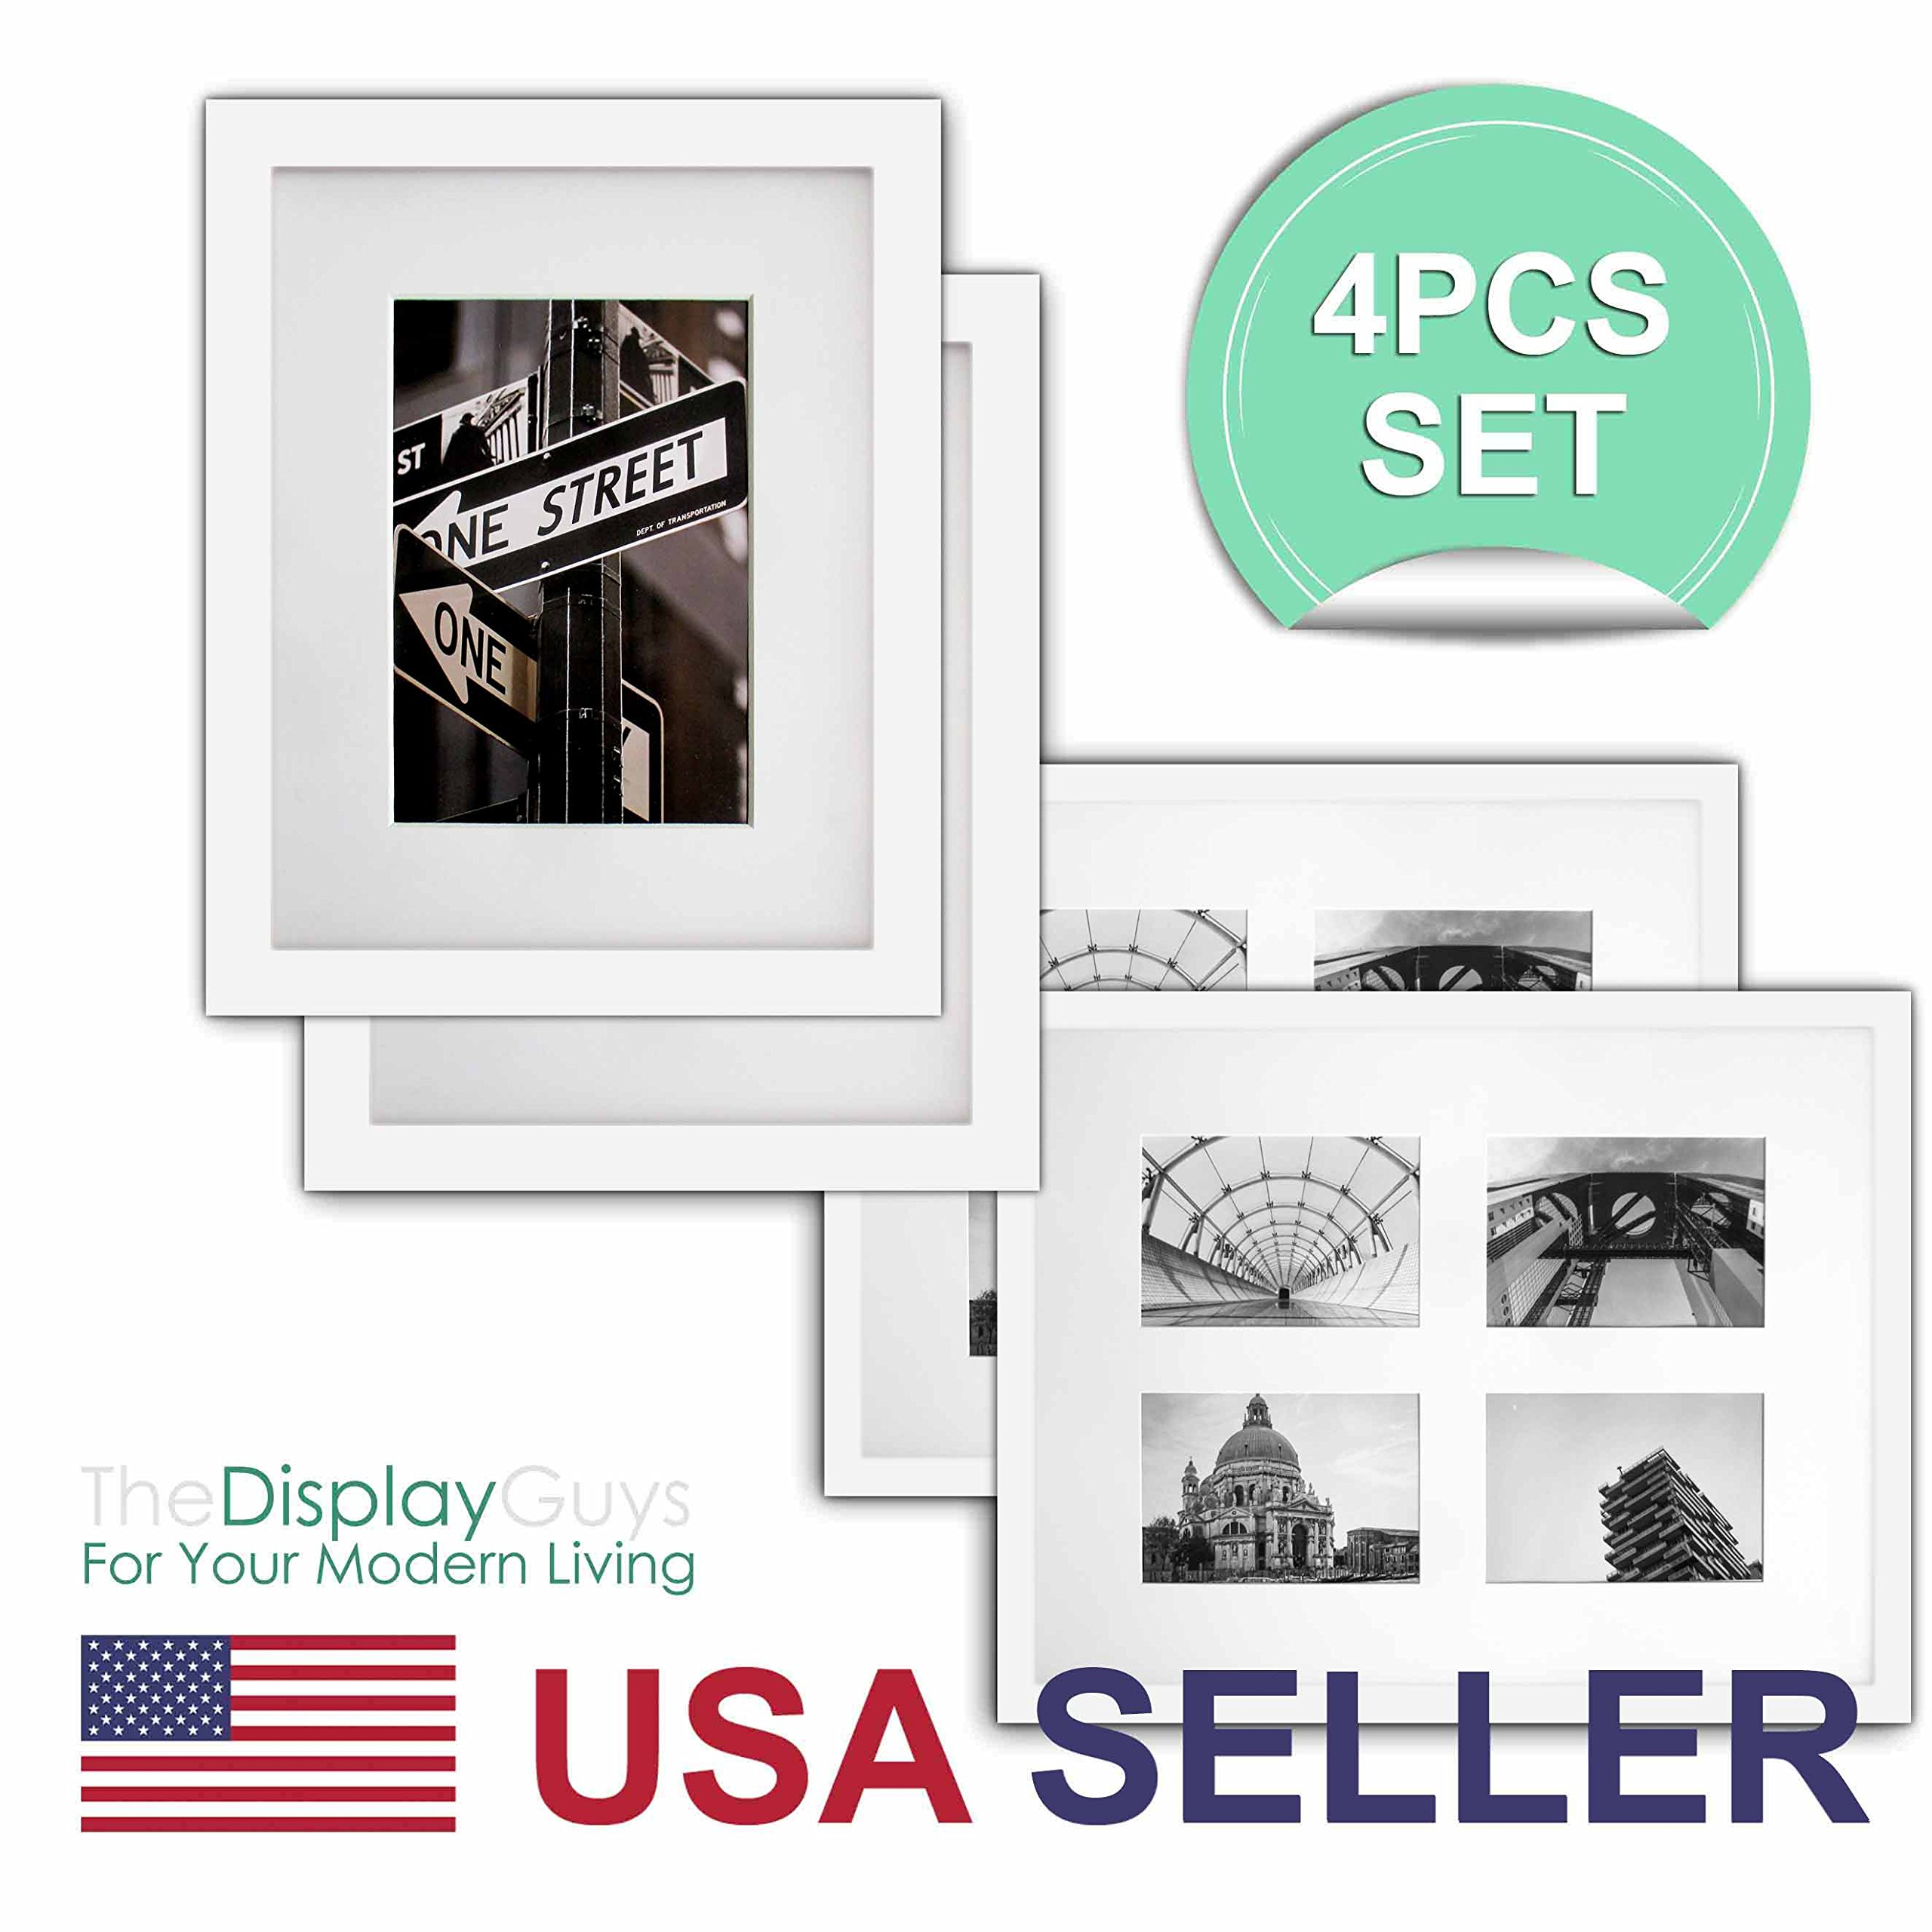 The Display Guys - 4 Sets 16x20 inches White Solid Pine Wood Photo Frame, Tempered Glass With White Core Mat Boards for 11x14 Picture + Collage Mat Boards for 4 -4x7 Picture